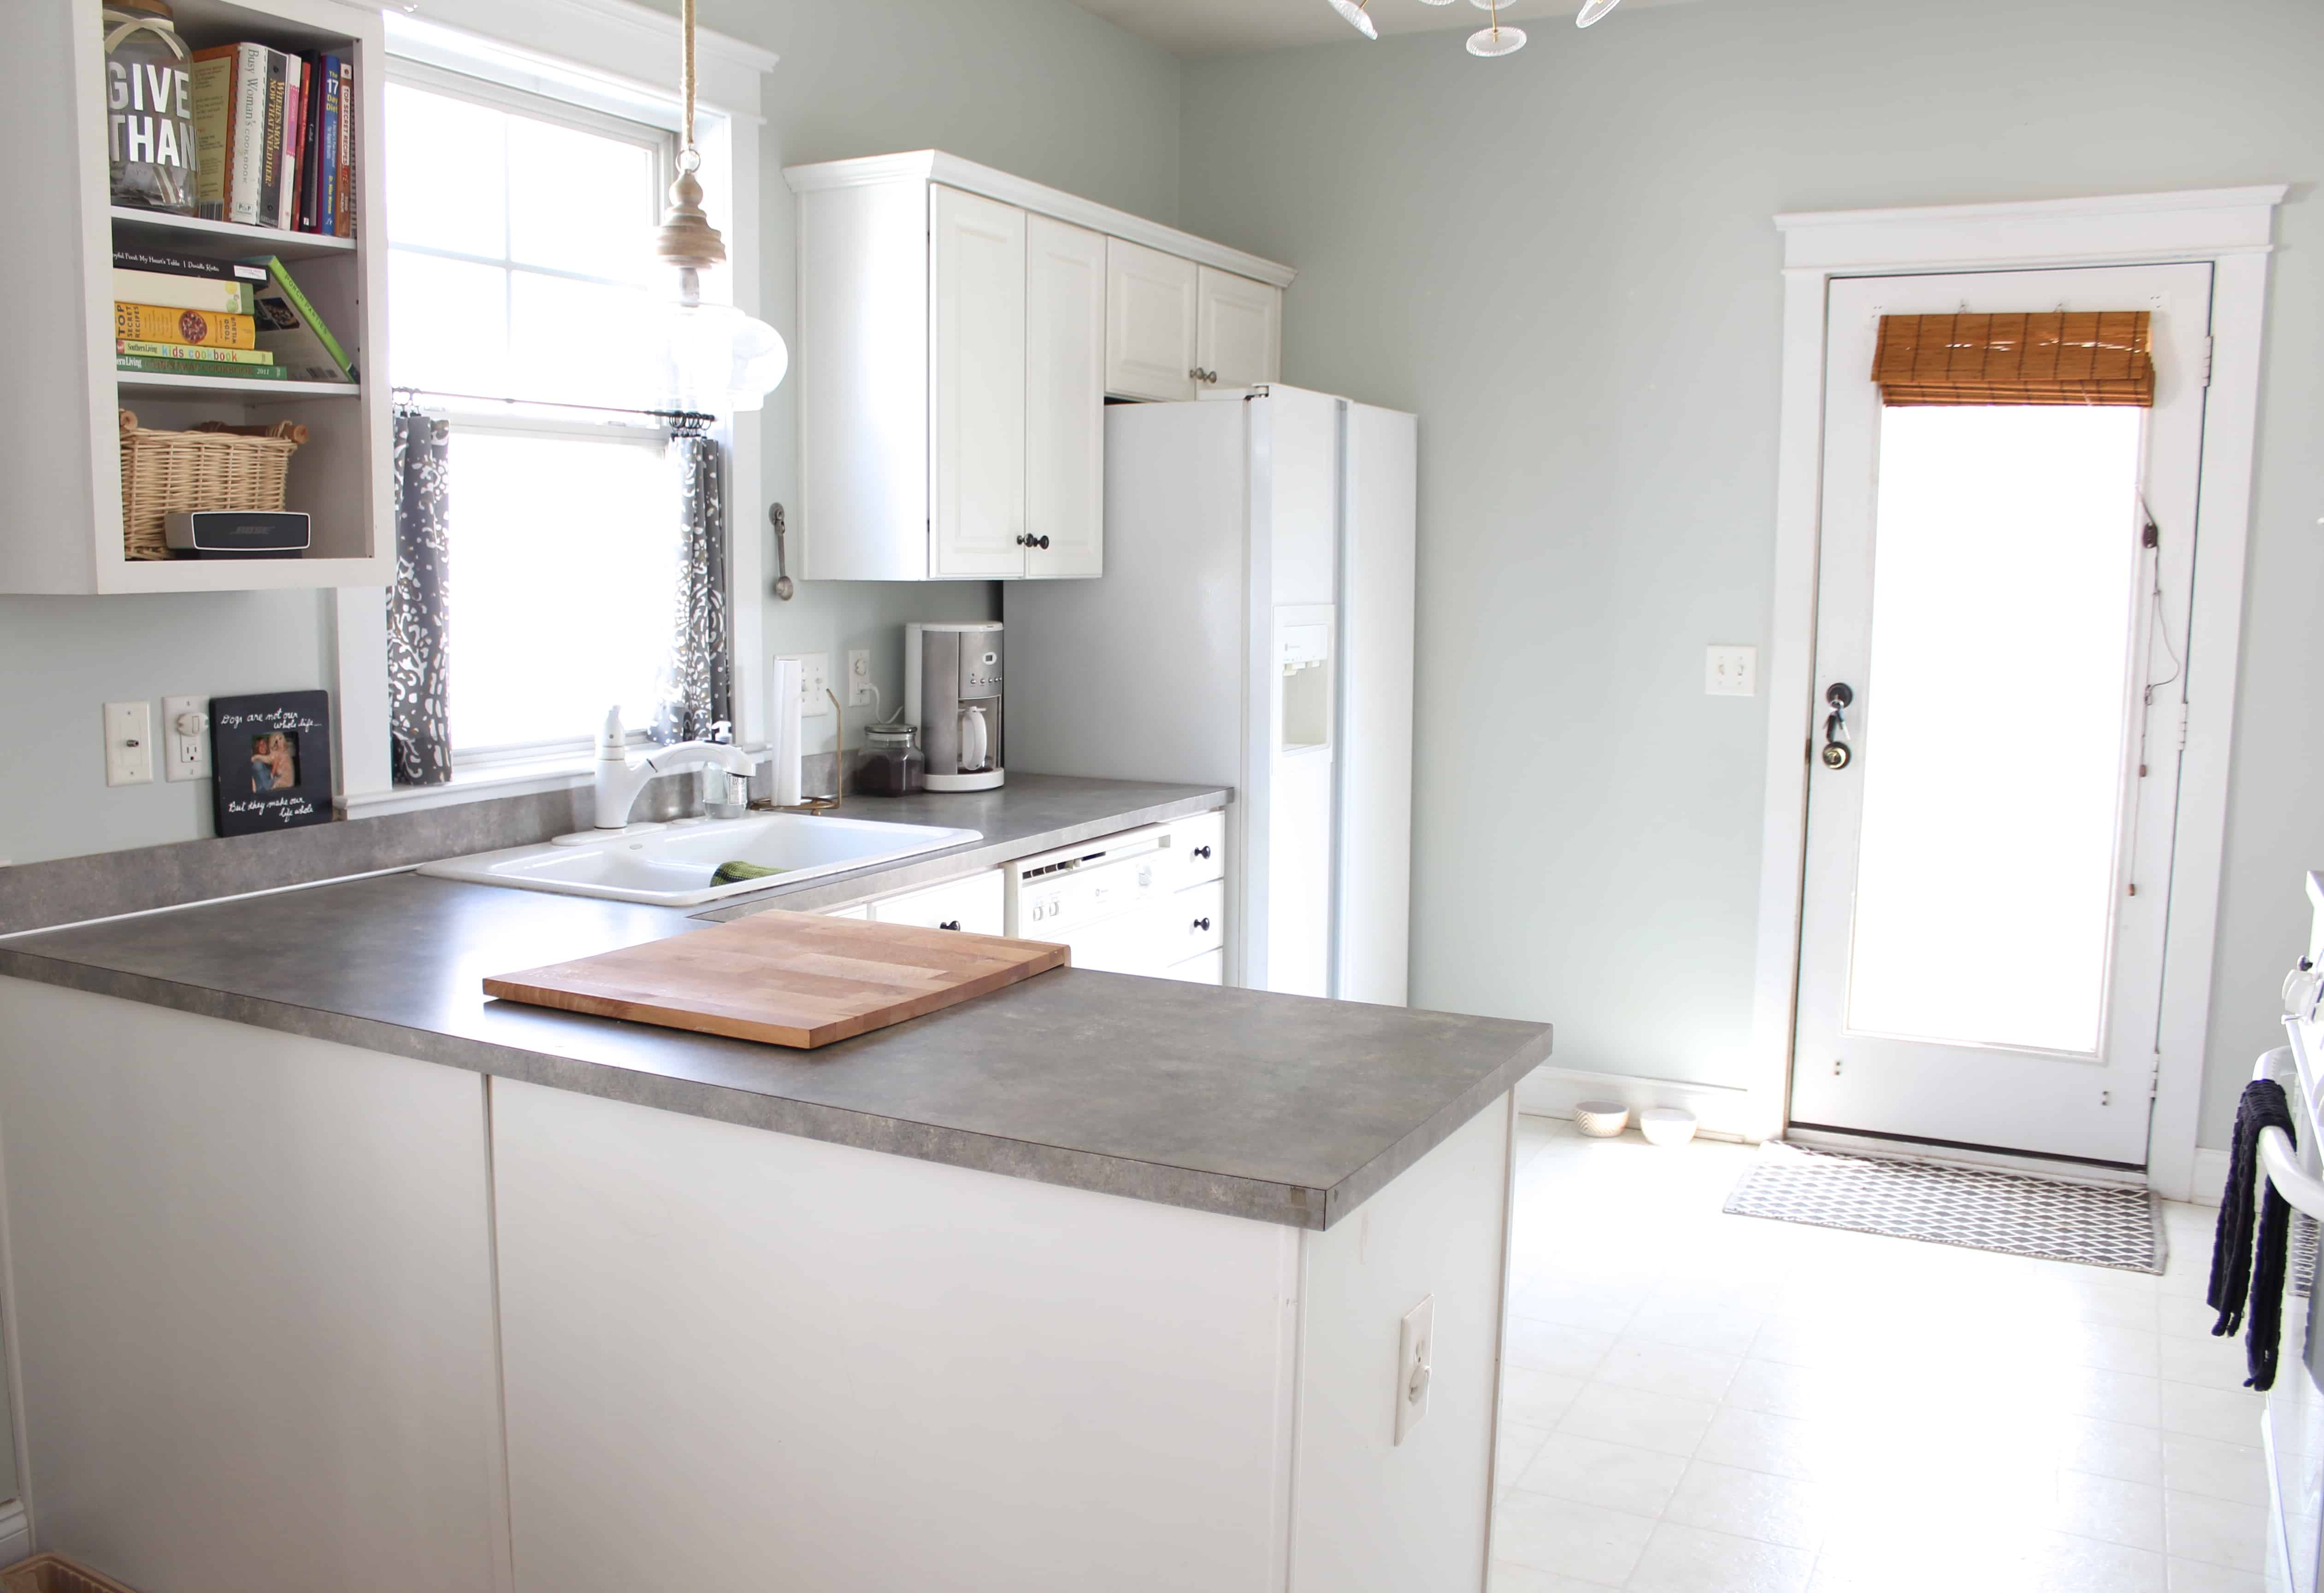 Kitchen Renovation: The Reveal